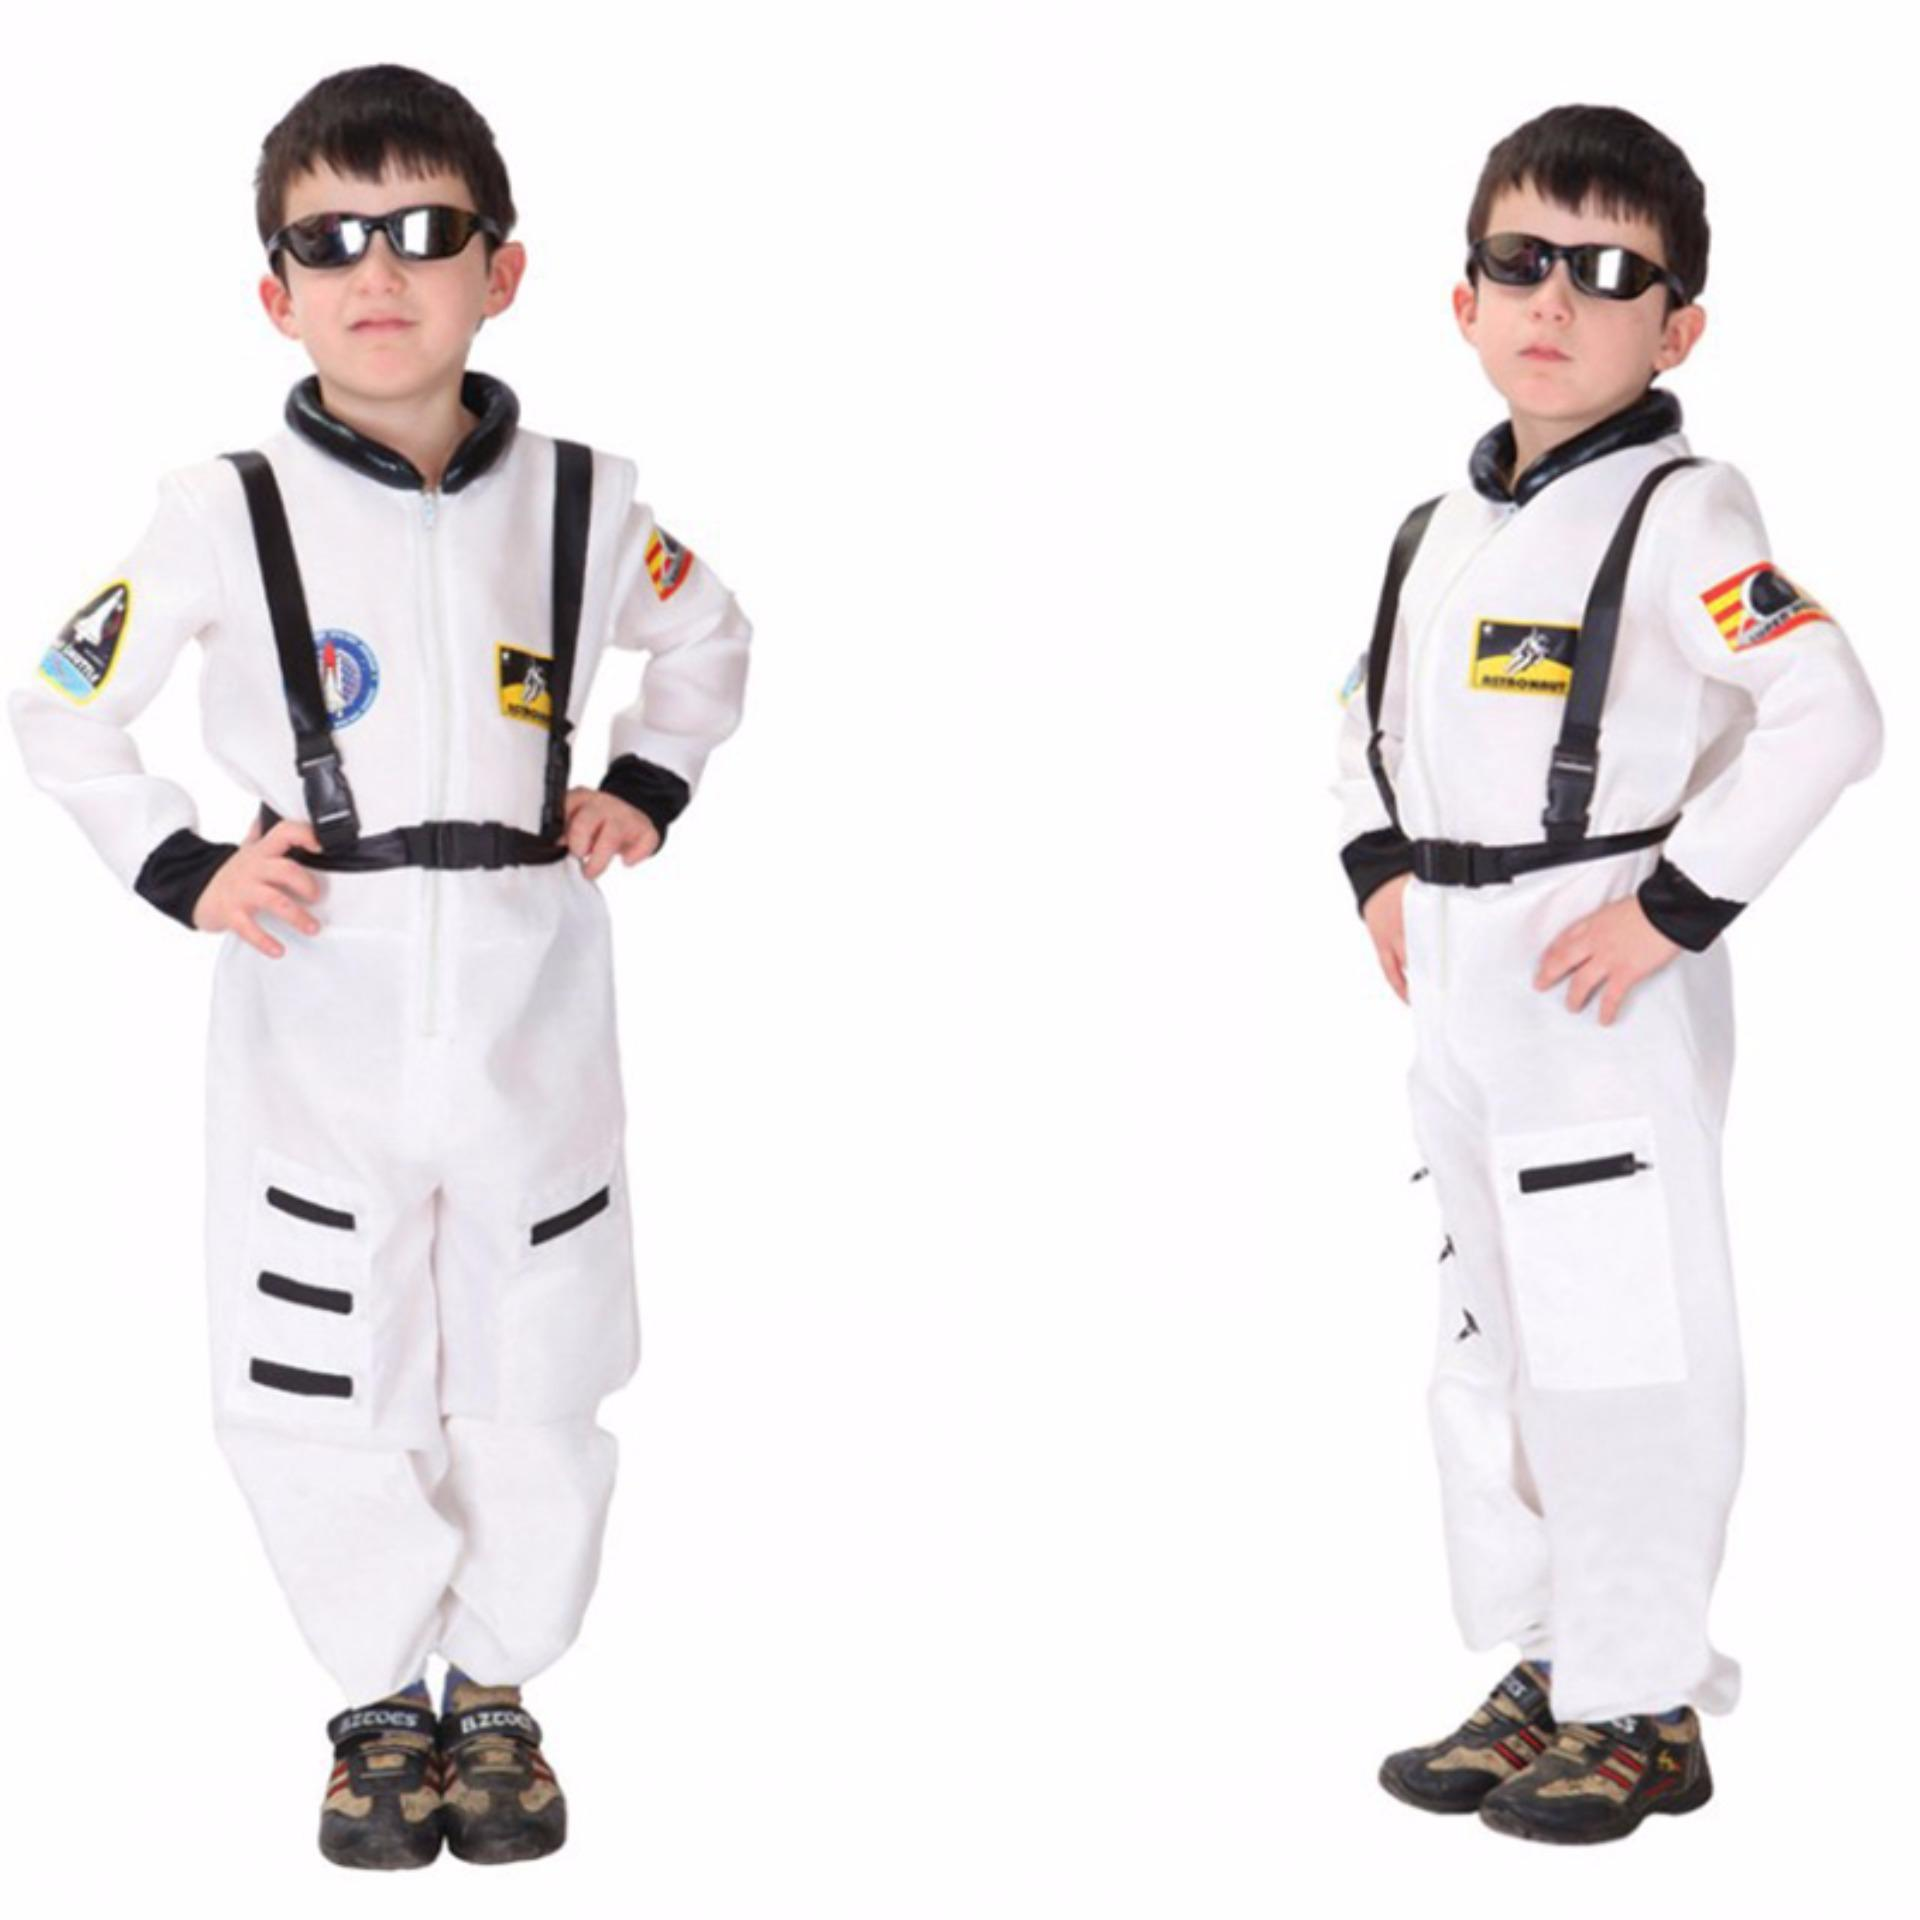 Astronaut Costume Boys Size Medium Age 4-5 years old Spaceman Jumpsuit Halloween Costume ...  sc 1 st  Nice Price - Online Shopping Coupons u0026 Discount Codes at Philippines & Philippines | Astronaut Costume Boys Size Medium Age 4-5 years old ...